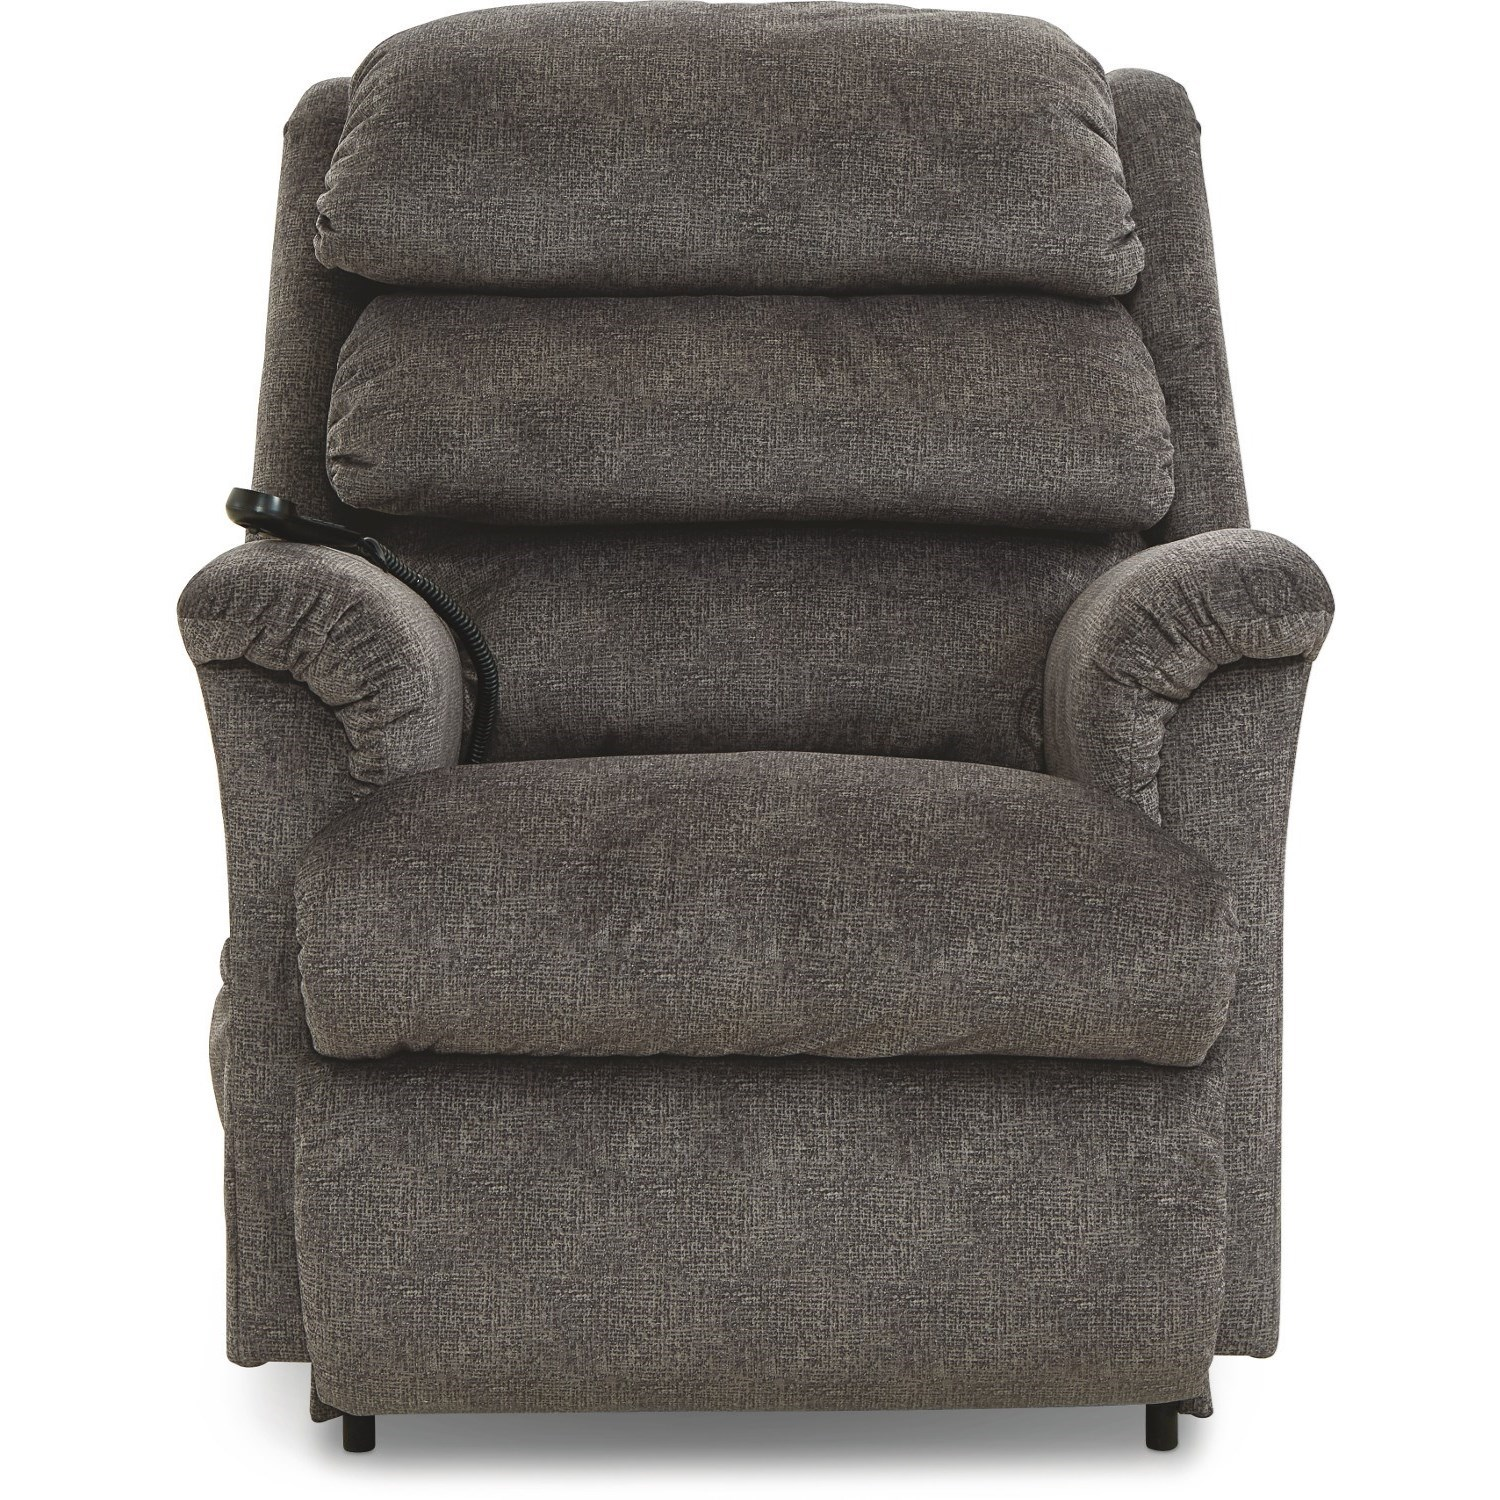 Astor Platinum Luxury Lift® Power-Recline-XR by La-Z-Boy at Fisher Home Furnishings